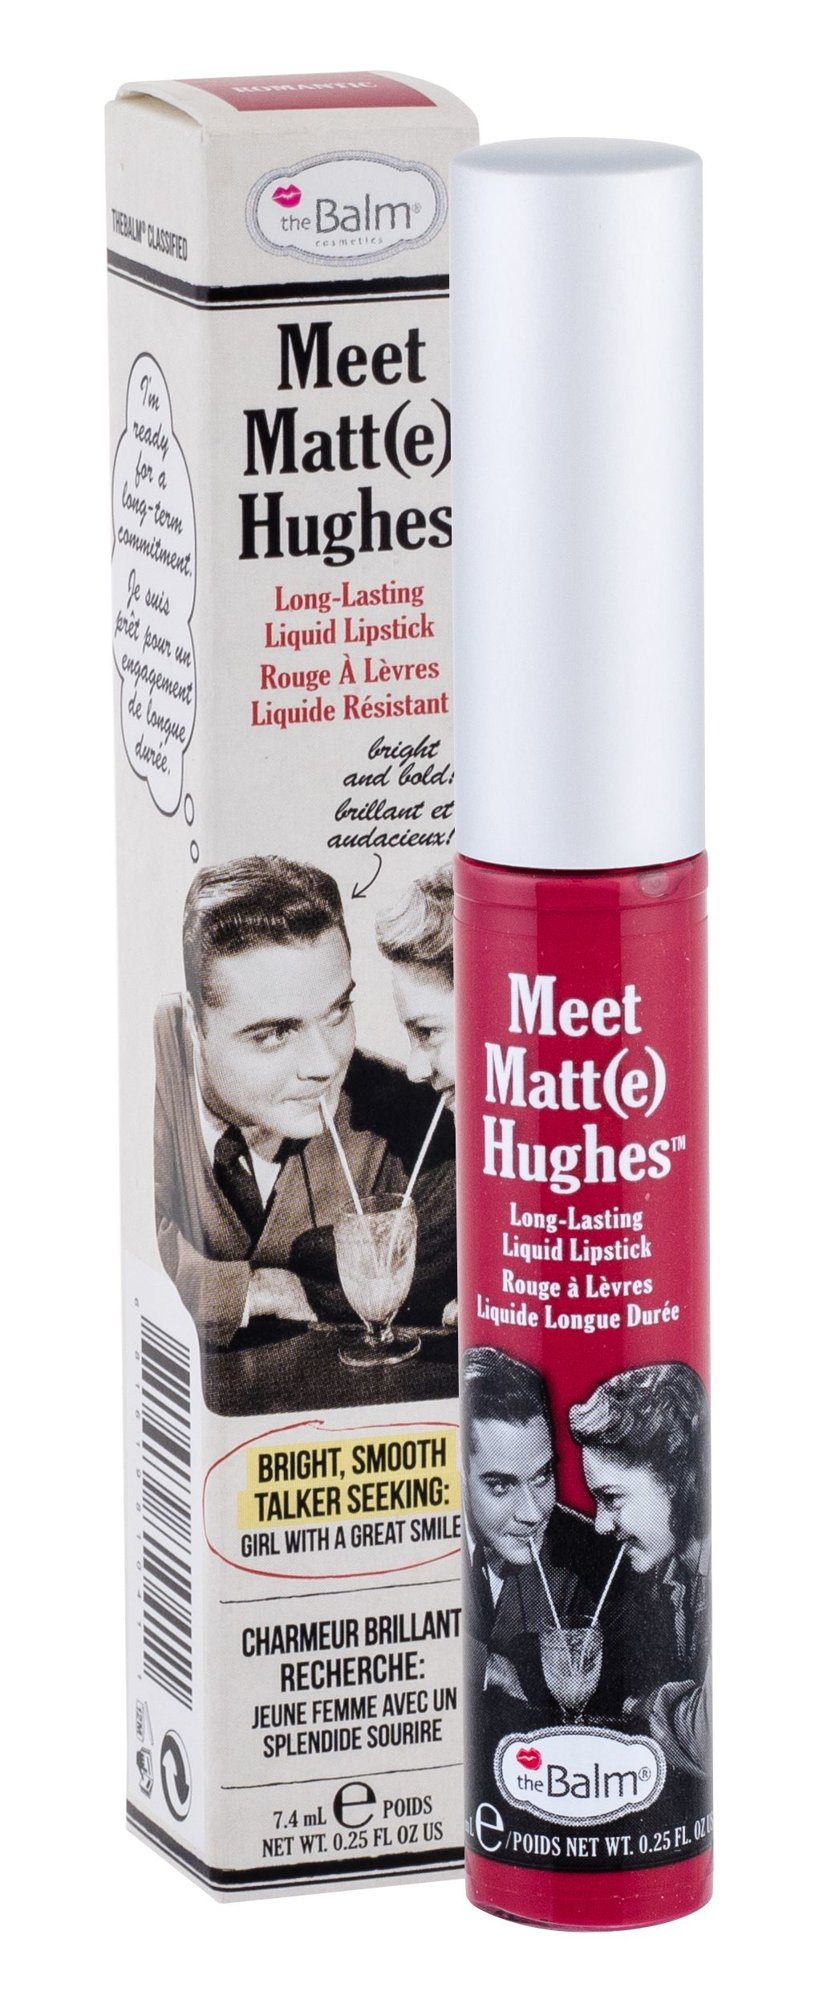 TheBalm Meet Matt(e) Hughes Cosmetic 7,4ml Romantic